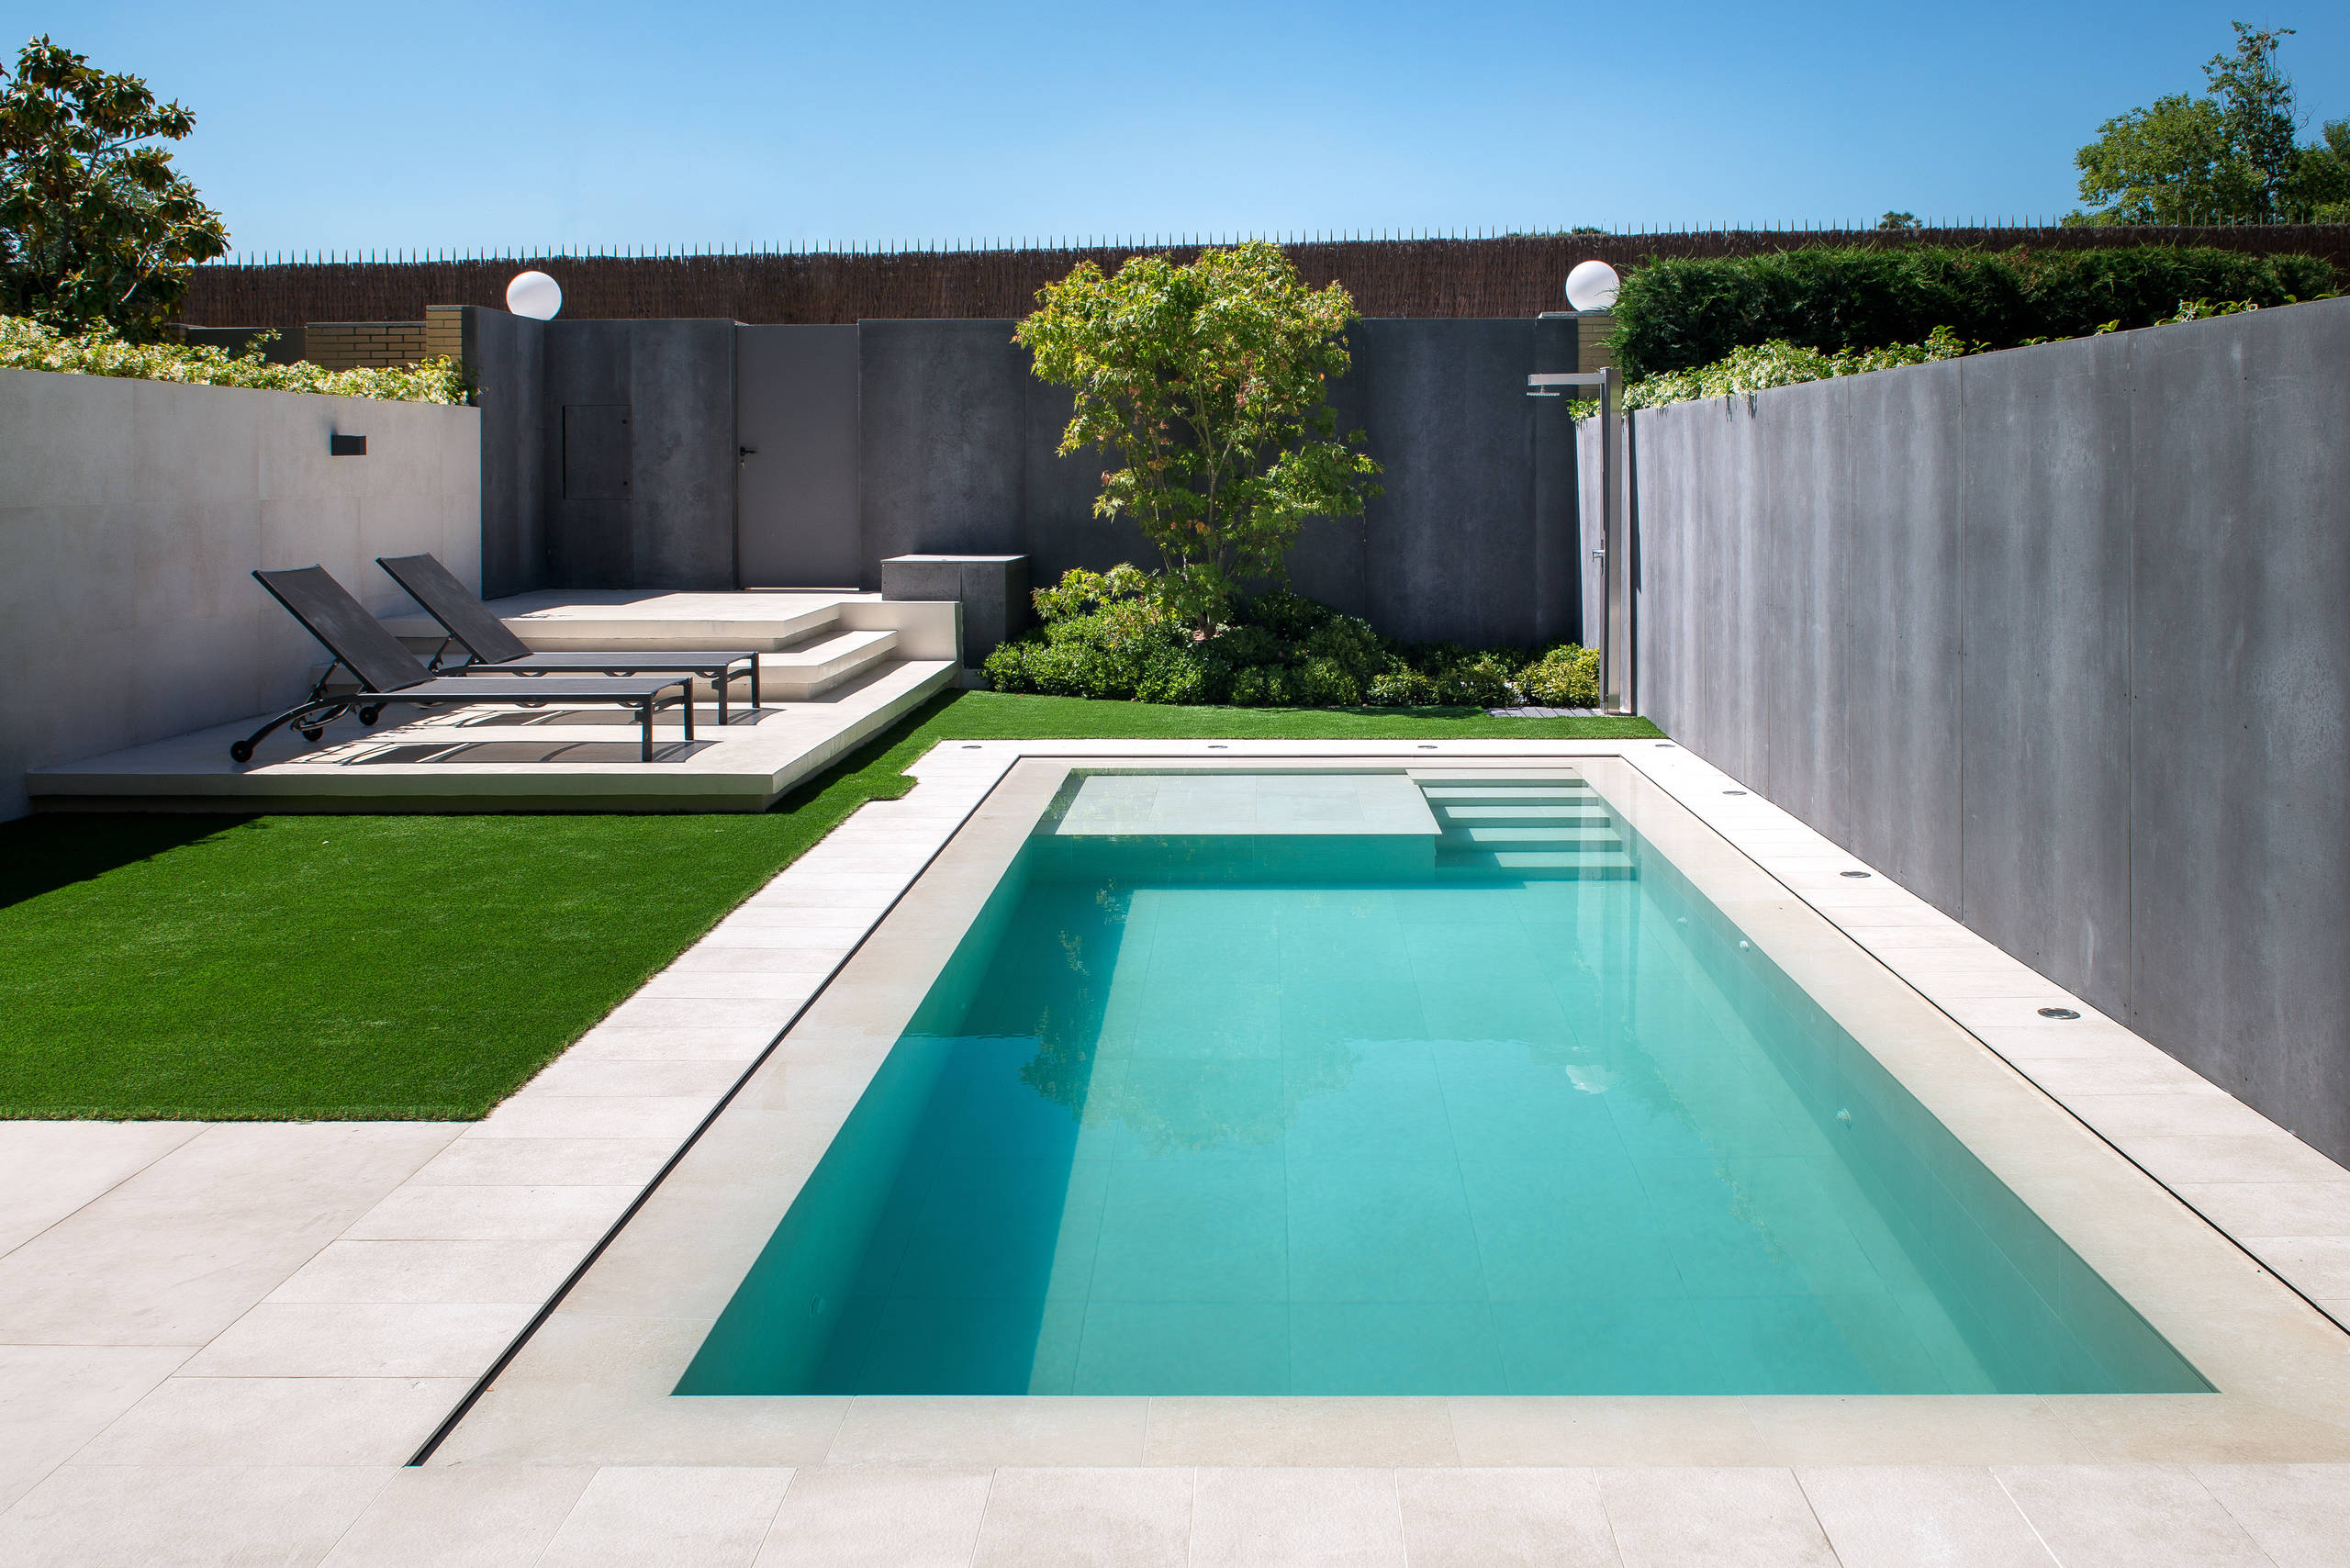 75 Beautiful Small Pool House Pictures Ideas March 2021 Houzz